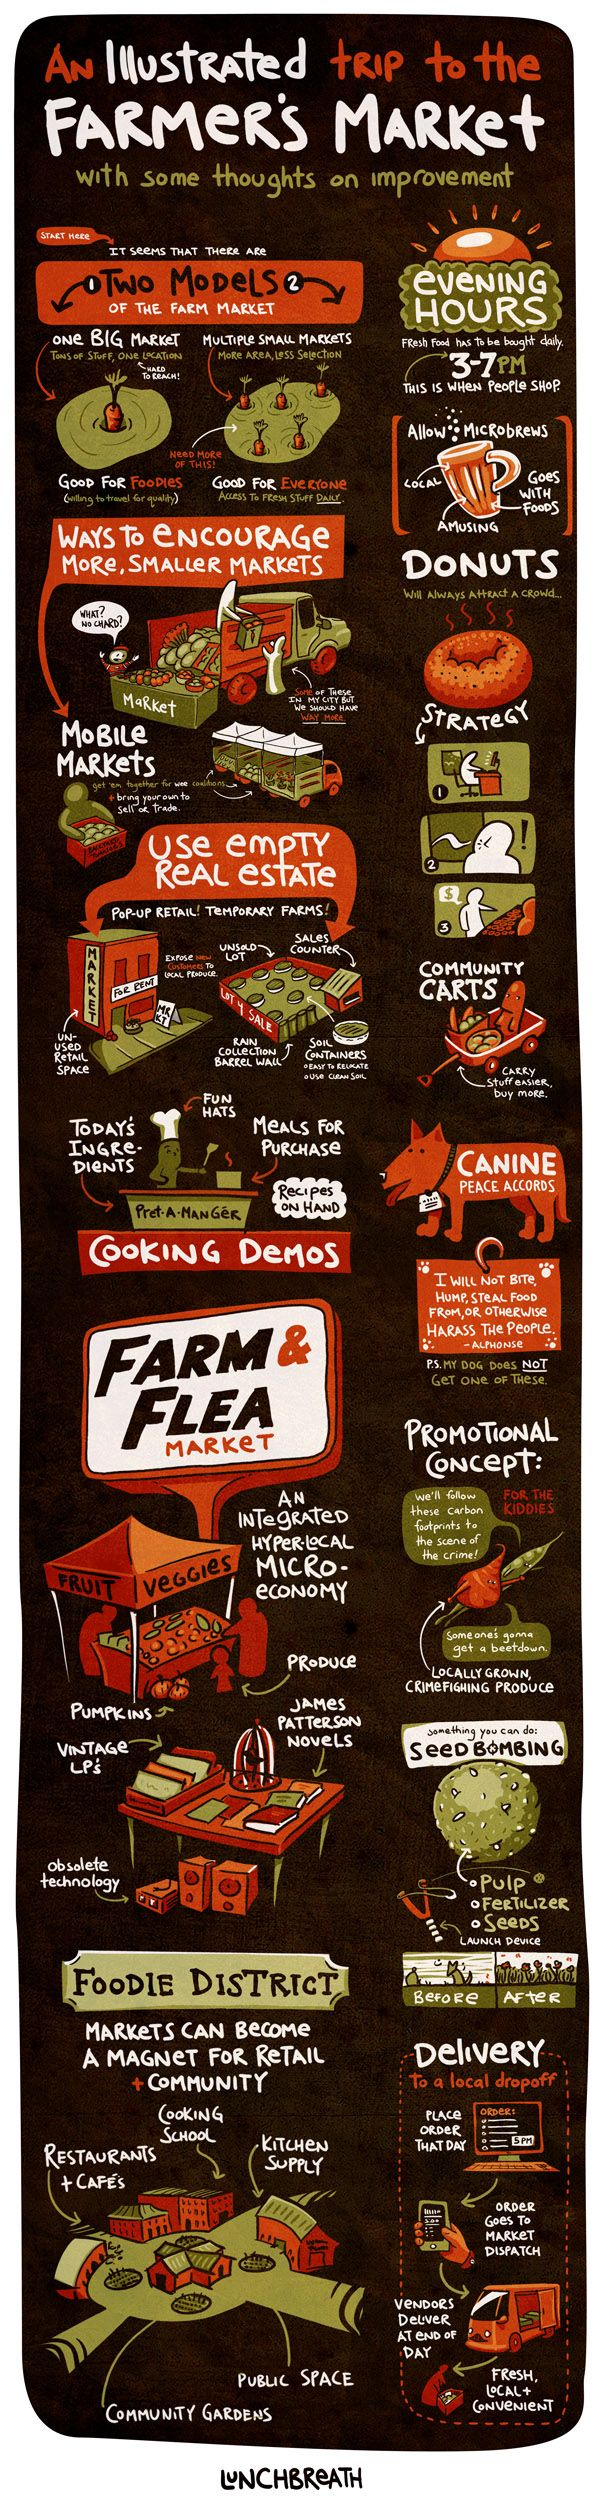 infographic about farmers markets | Infographic ...